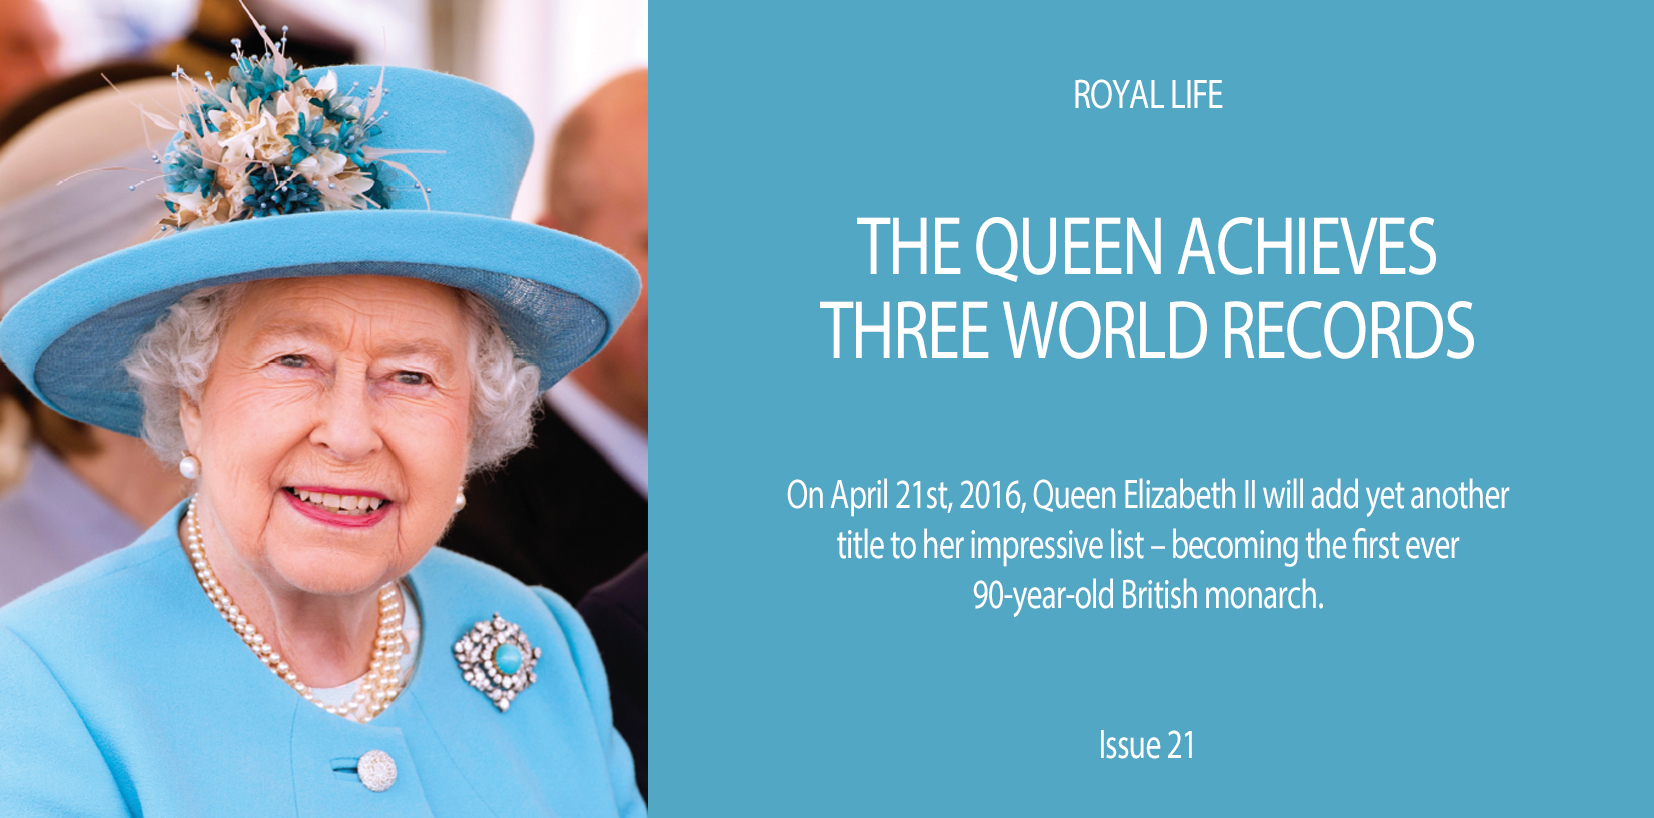 The Queen Achieves World Record